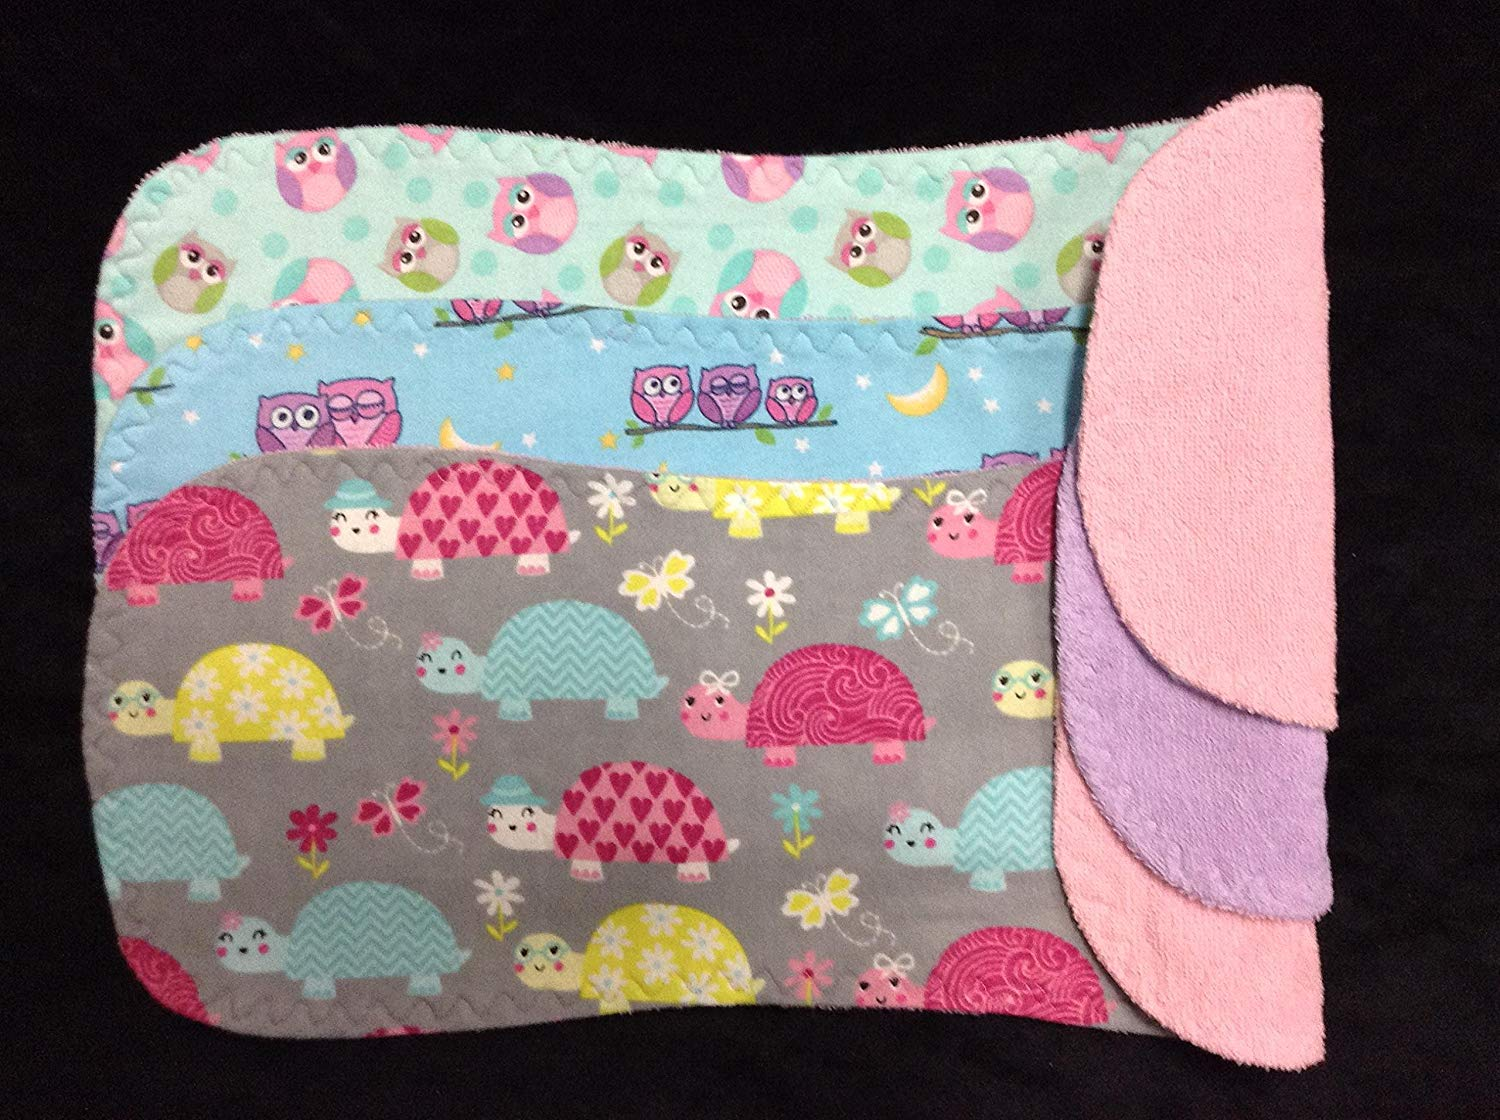 Baby Girl Cotton BURP CLOTHS, TURTLES, OWLS, Set of 3 Large Burp Rags, Absorbent Terry, Soft Flannel, Baby Gift, BABY SHOWER, Pink, Blue, Aqua Breastfeeding Cloth, Owls burpcloths